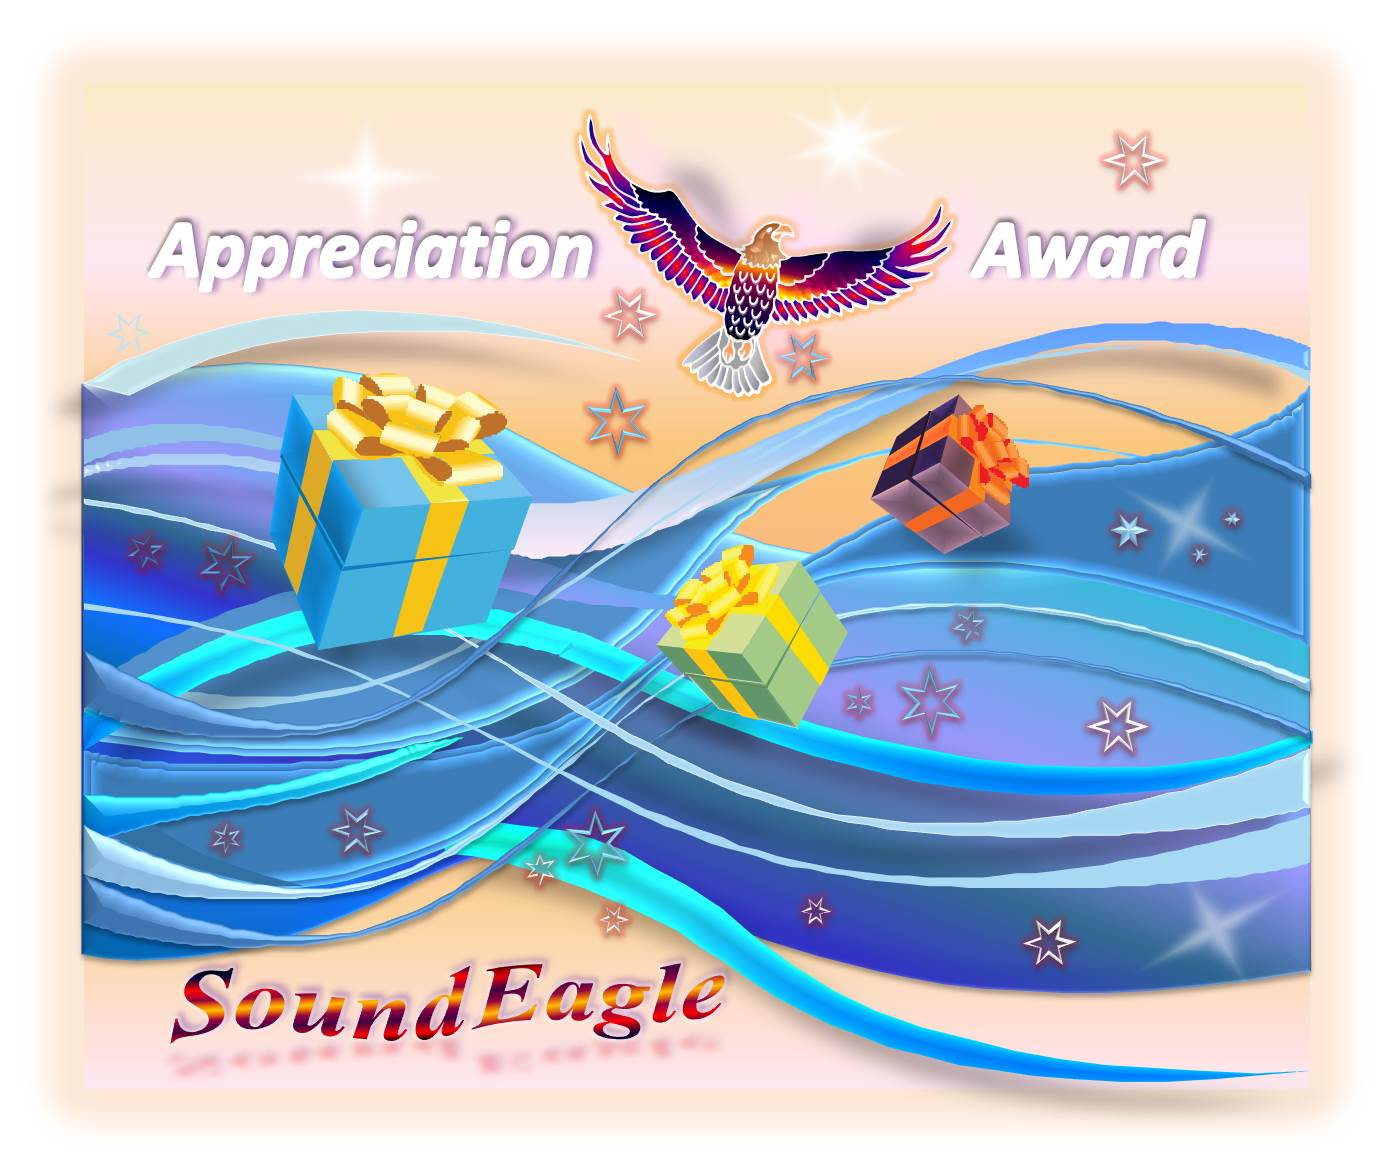 SoundEagle Appreciation Award